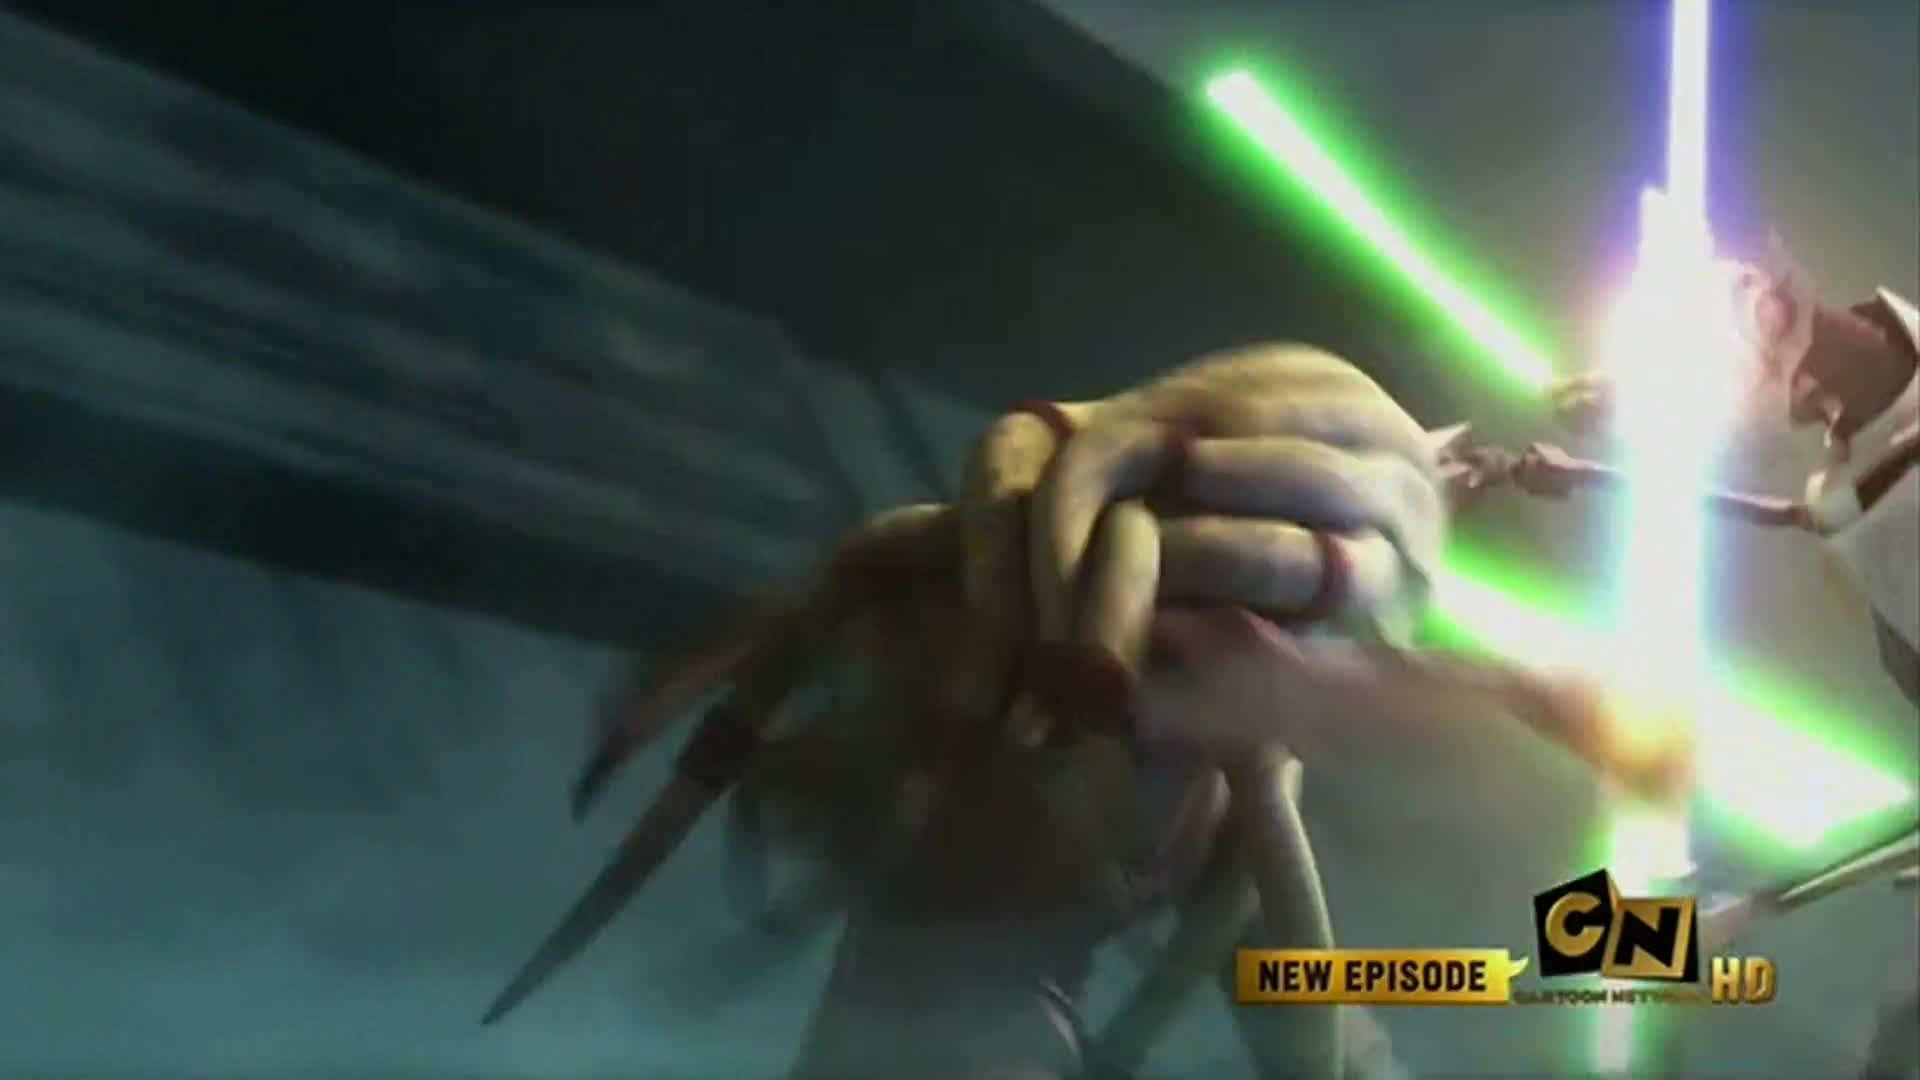 master kit fisto(me) vs general grievous video - clone wars - mod db